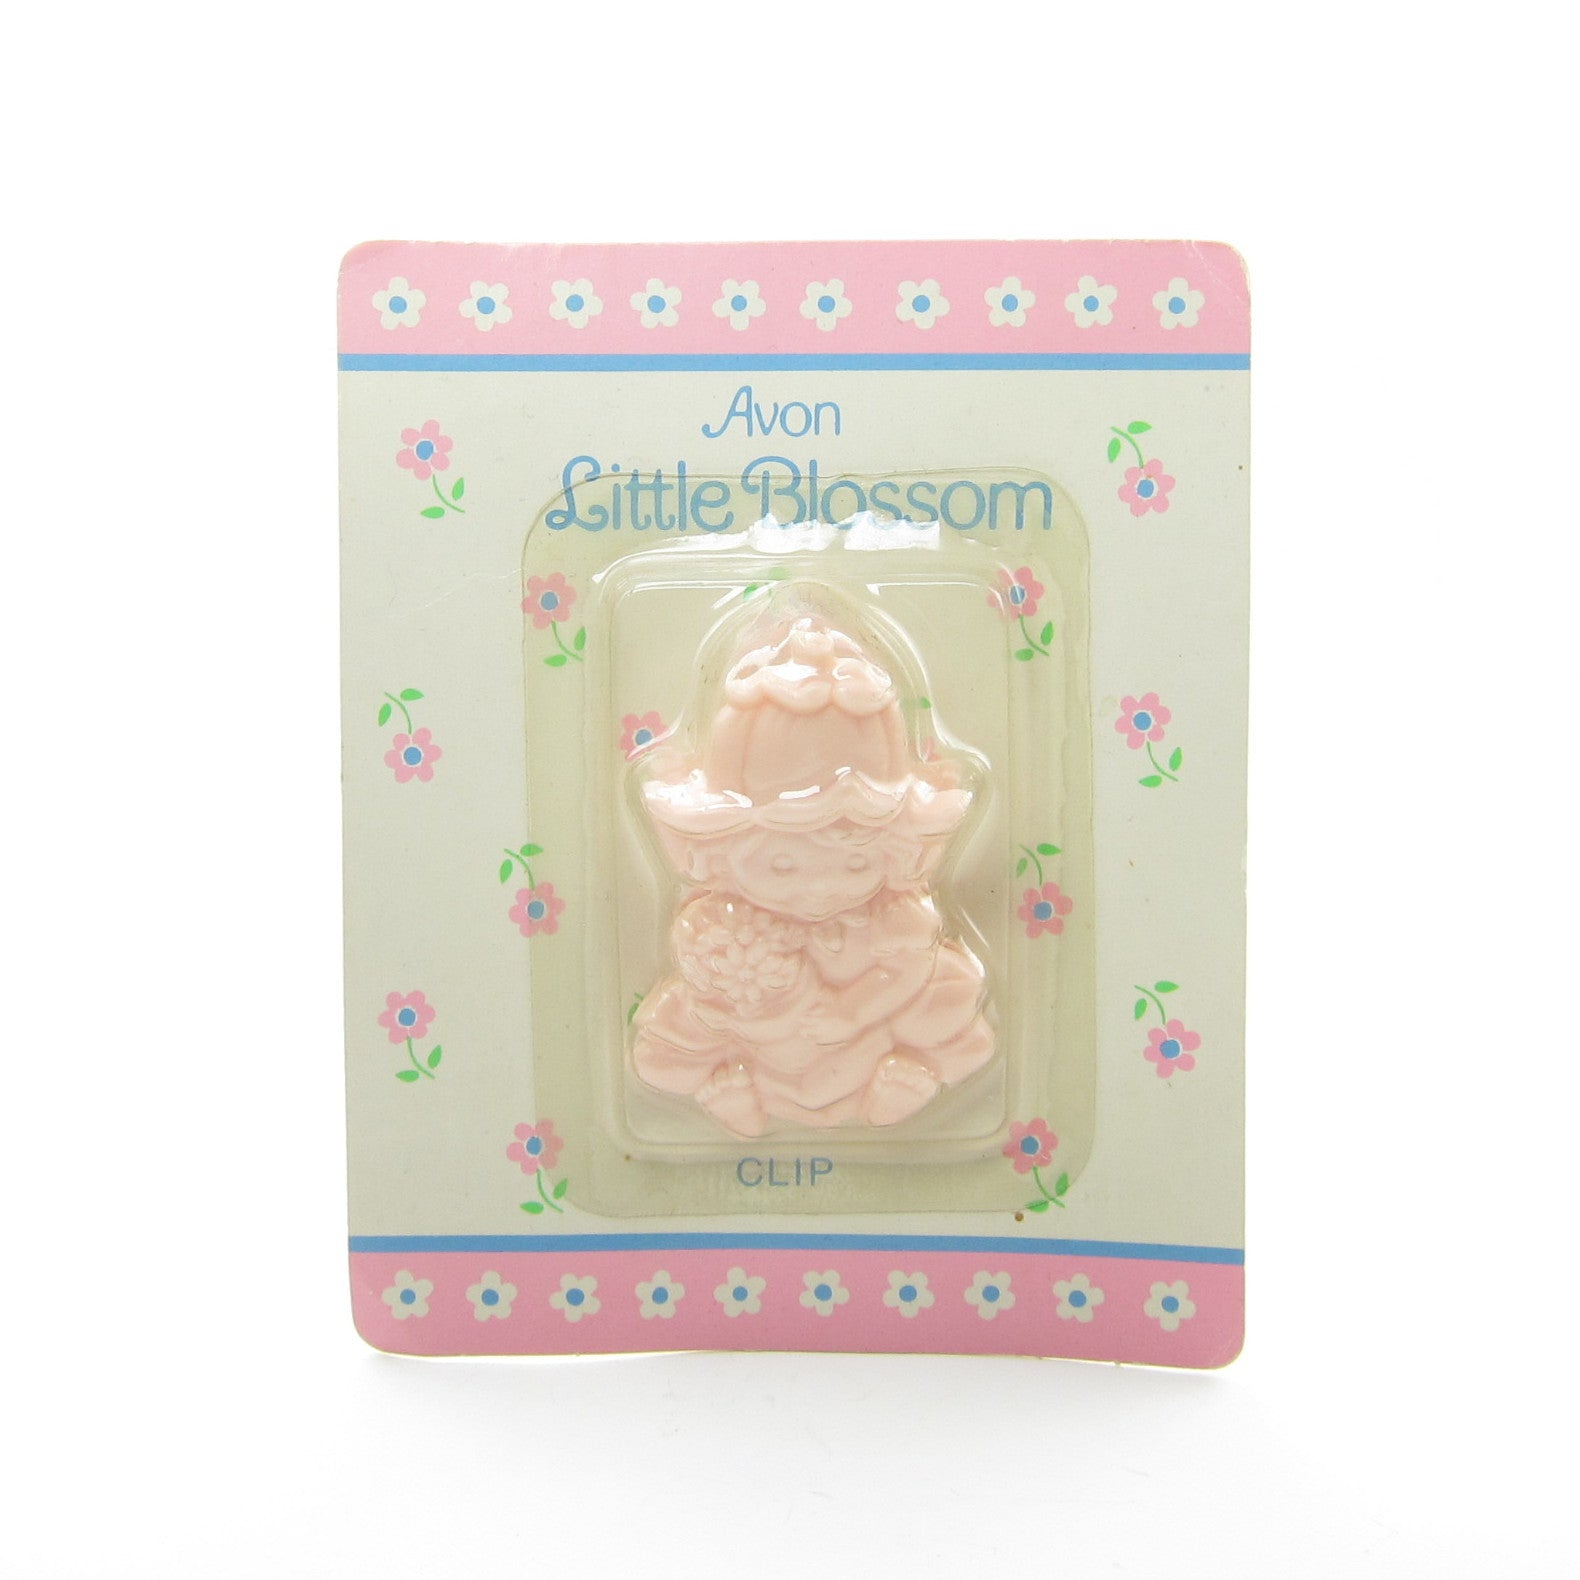 Avon Little Blossom plastic clip in package